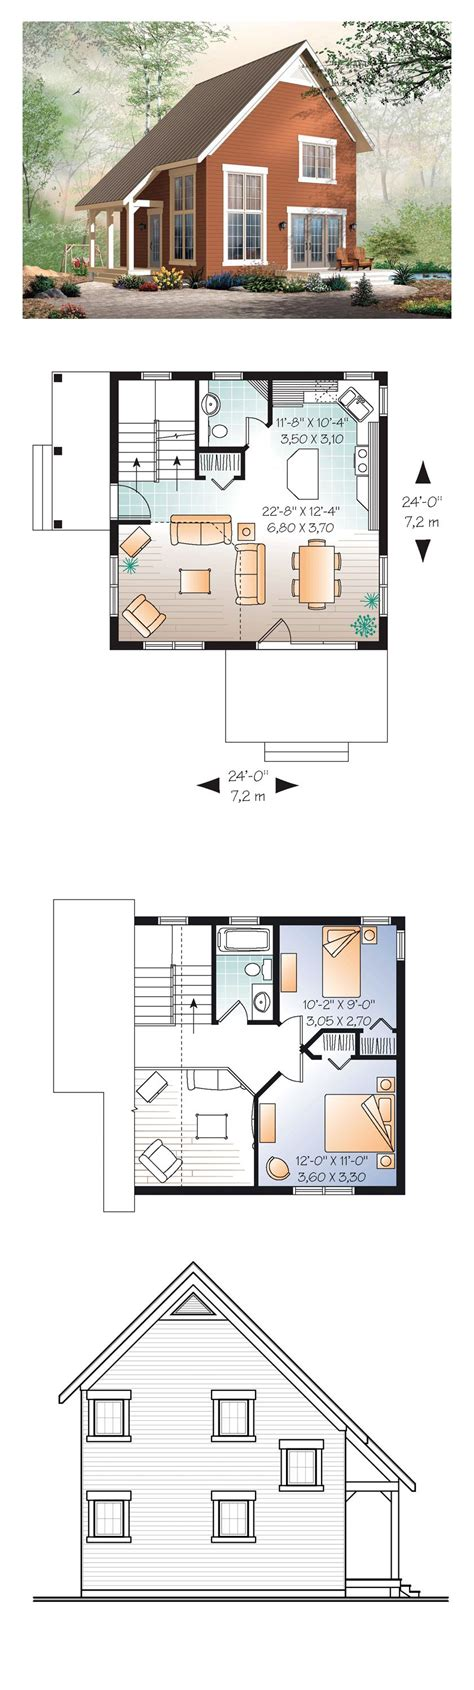 narrow lot house plans with basement narrow lot house plan 76149 total living area 1050 sq